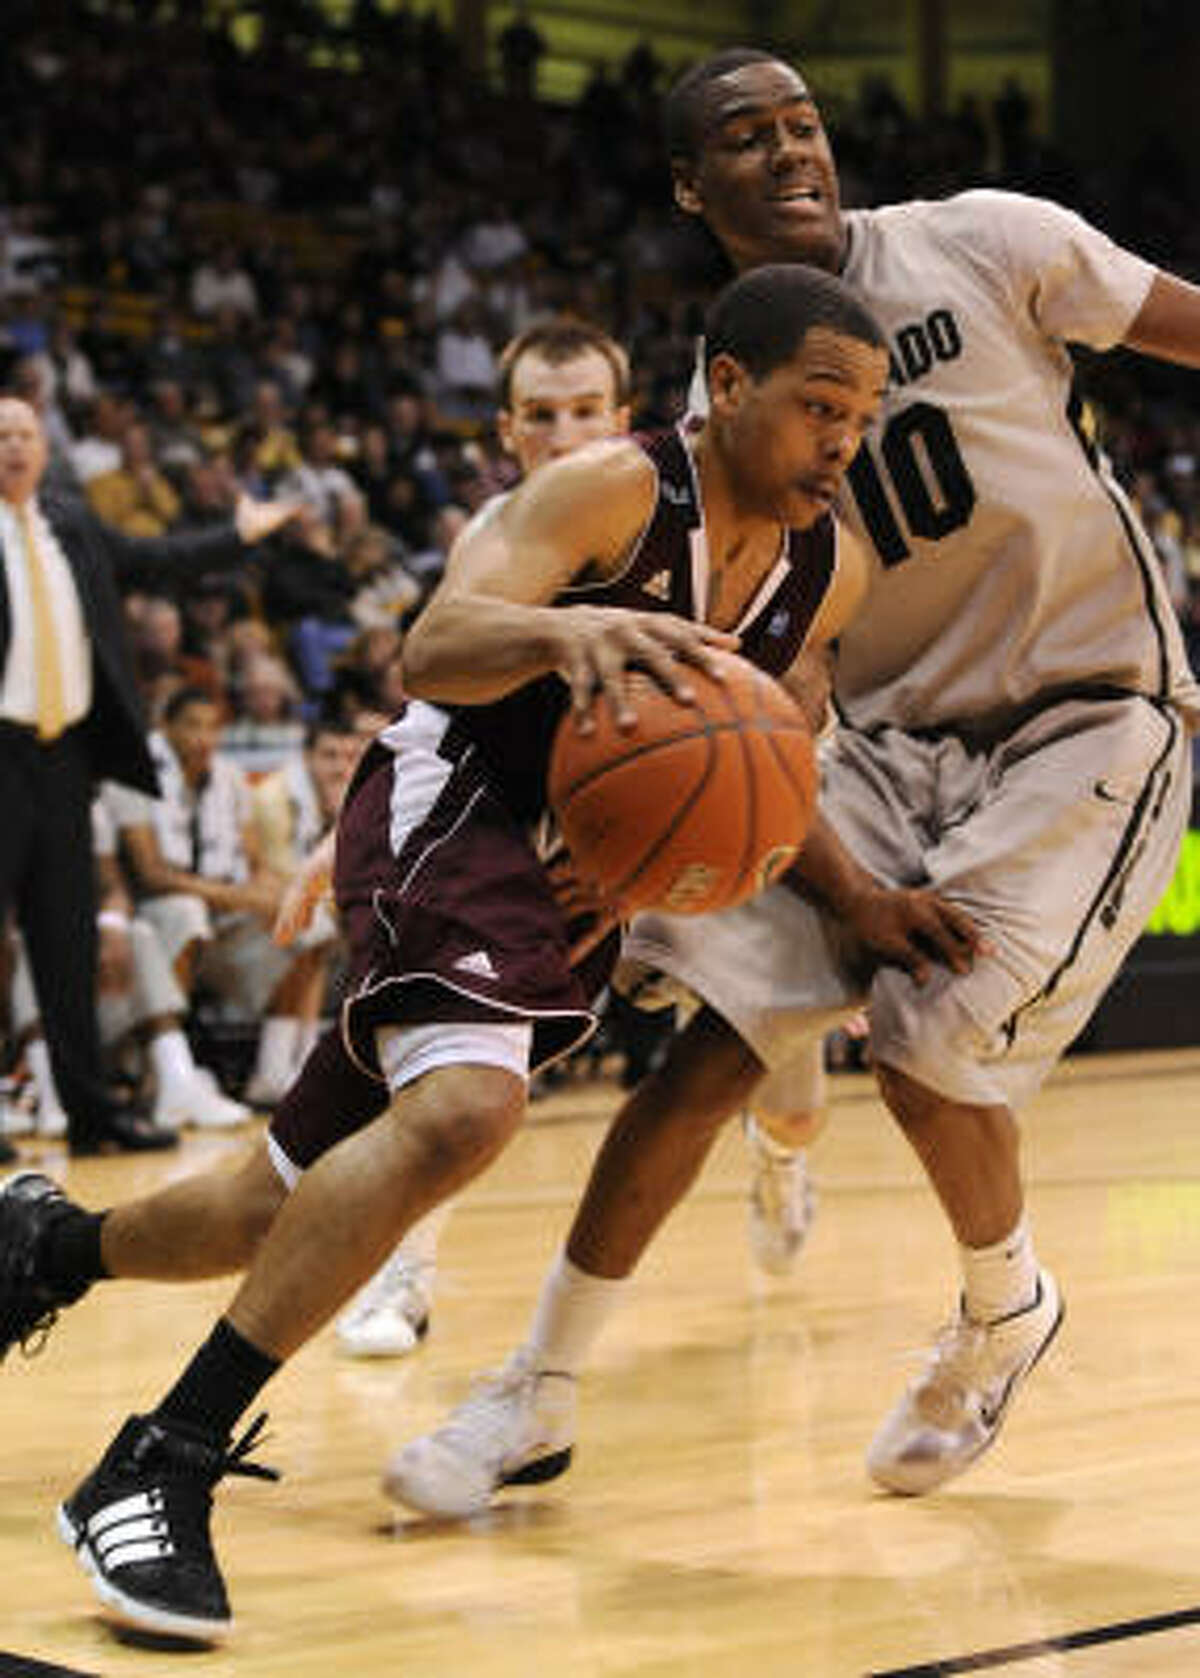 Texas A&M guard B.J. Holmes drives past Colorado guard Alec Burks (10) during overtime. Holmes finished with 13 points.